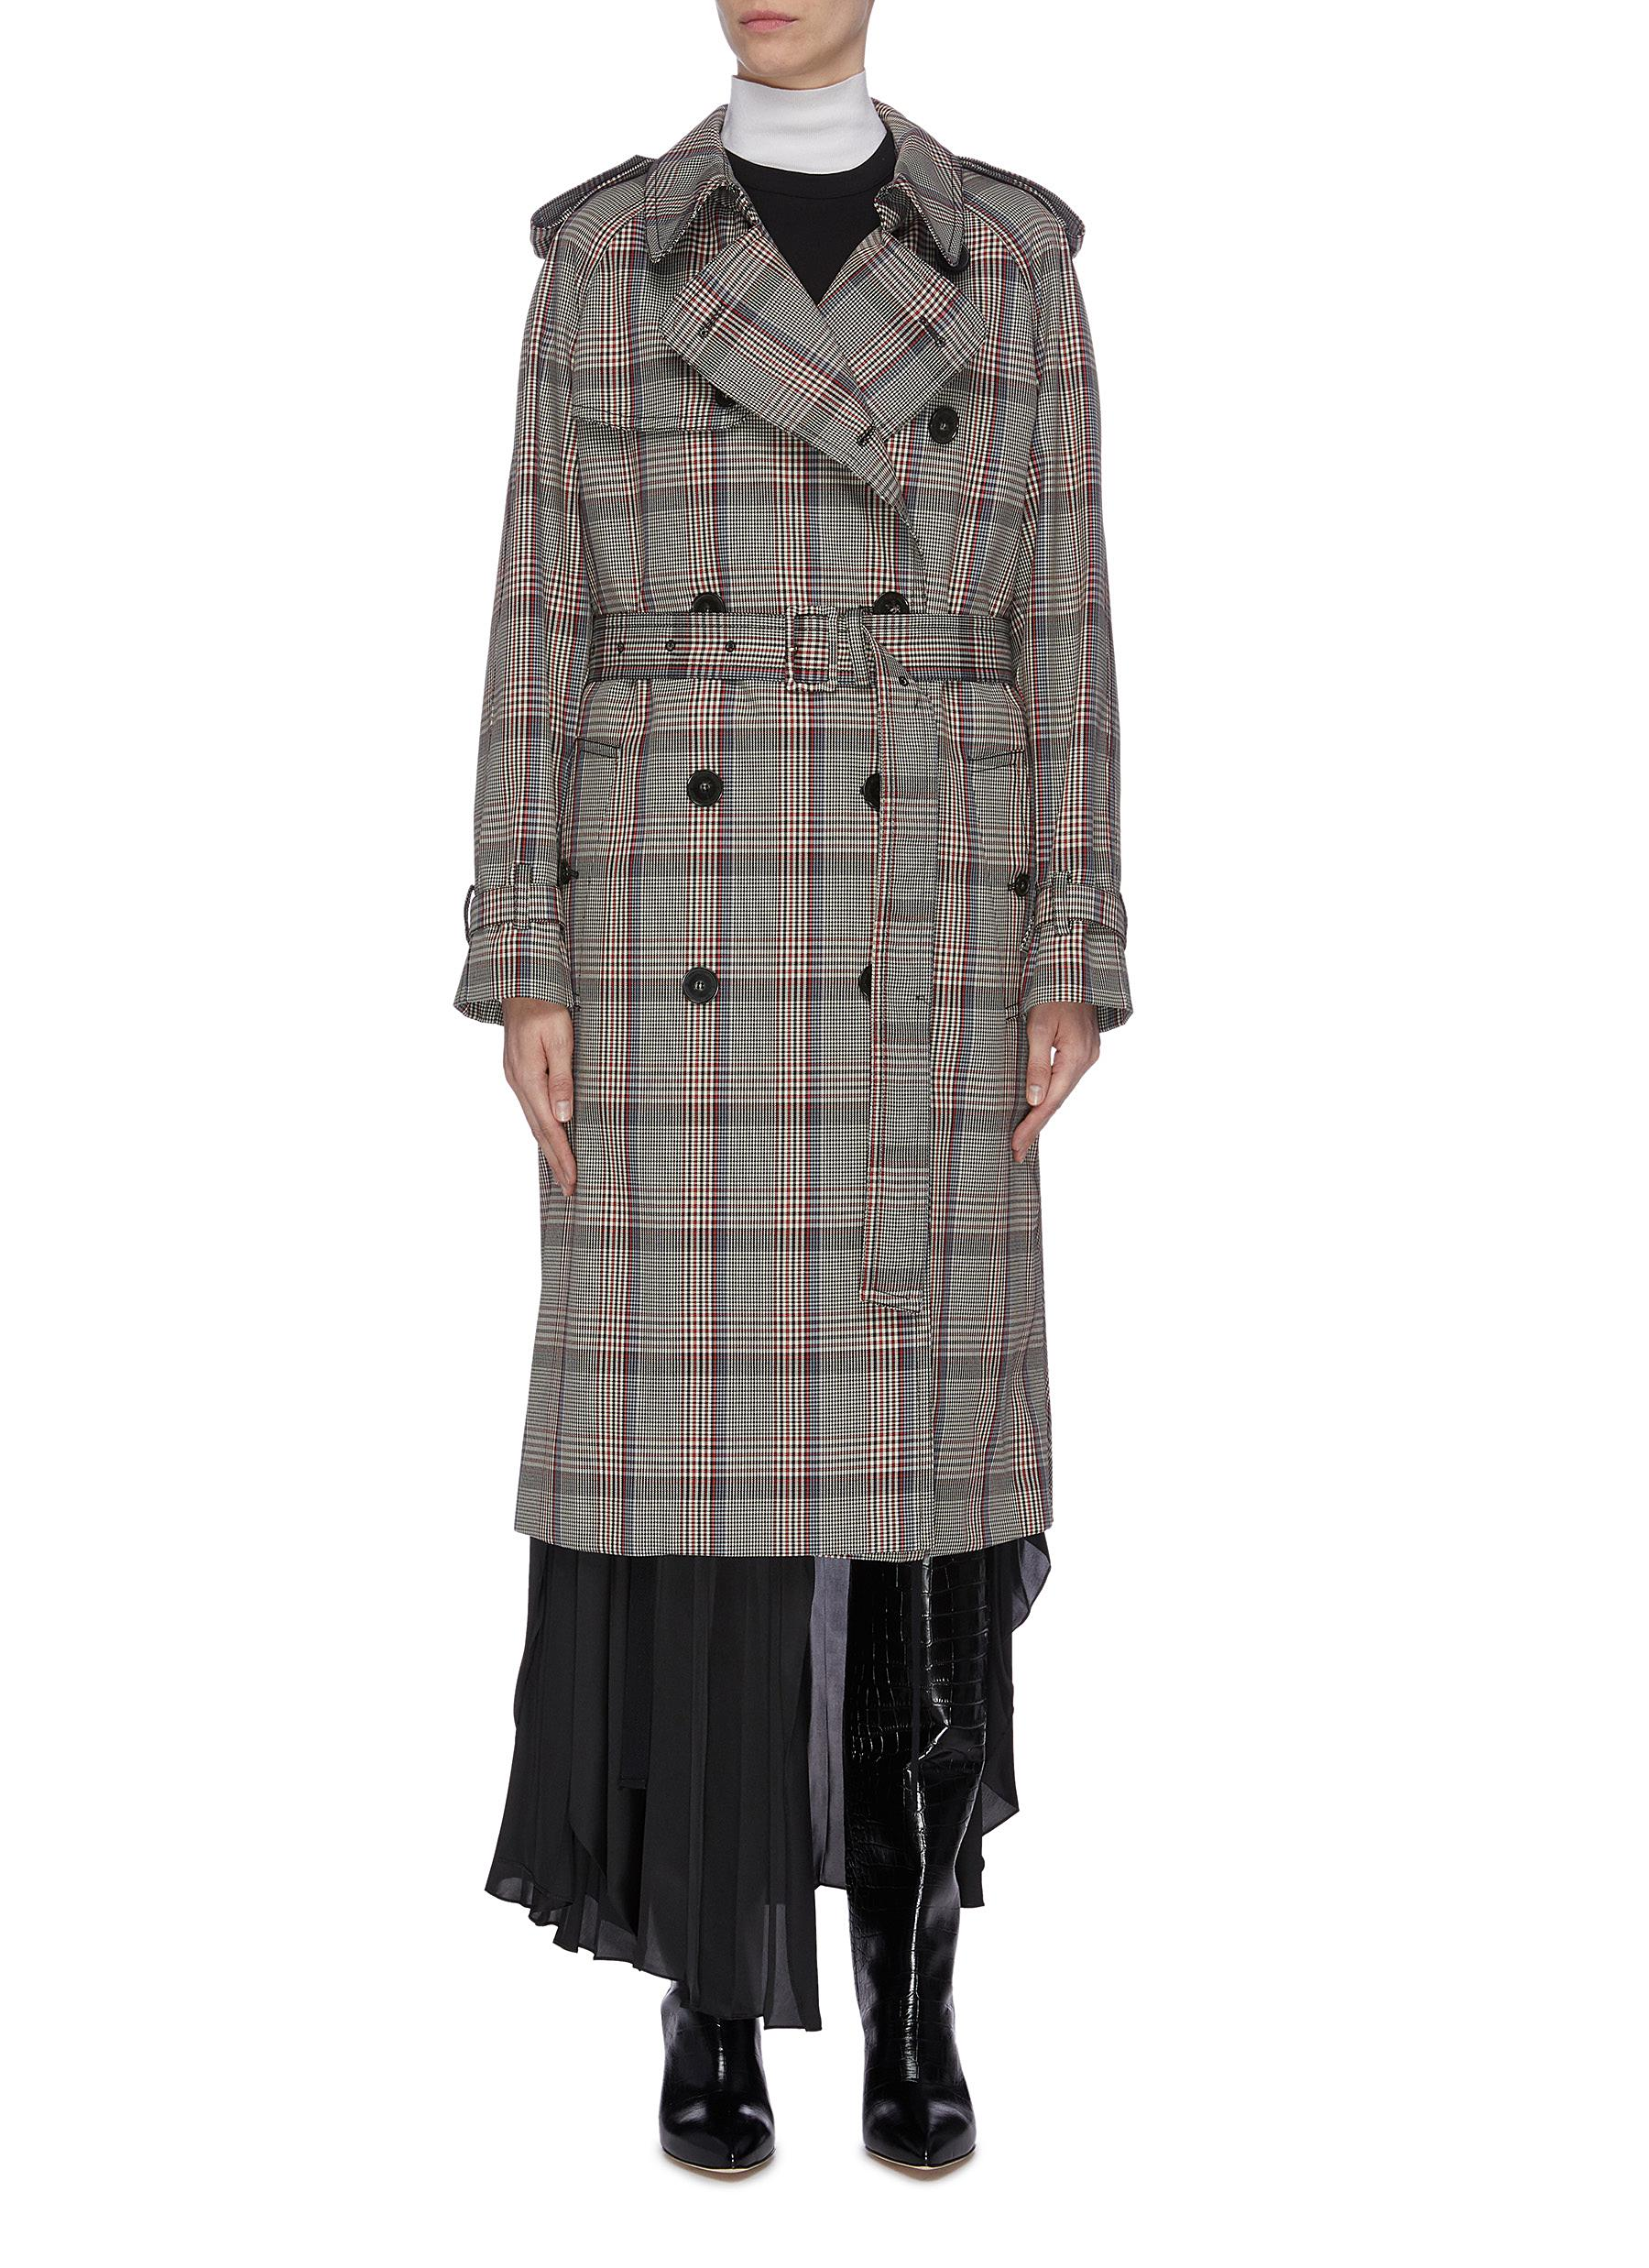 Belted tartan plaid trench coat by Stella Mccartney